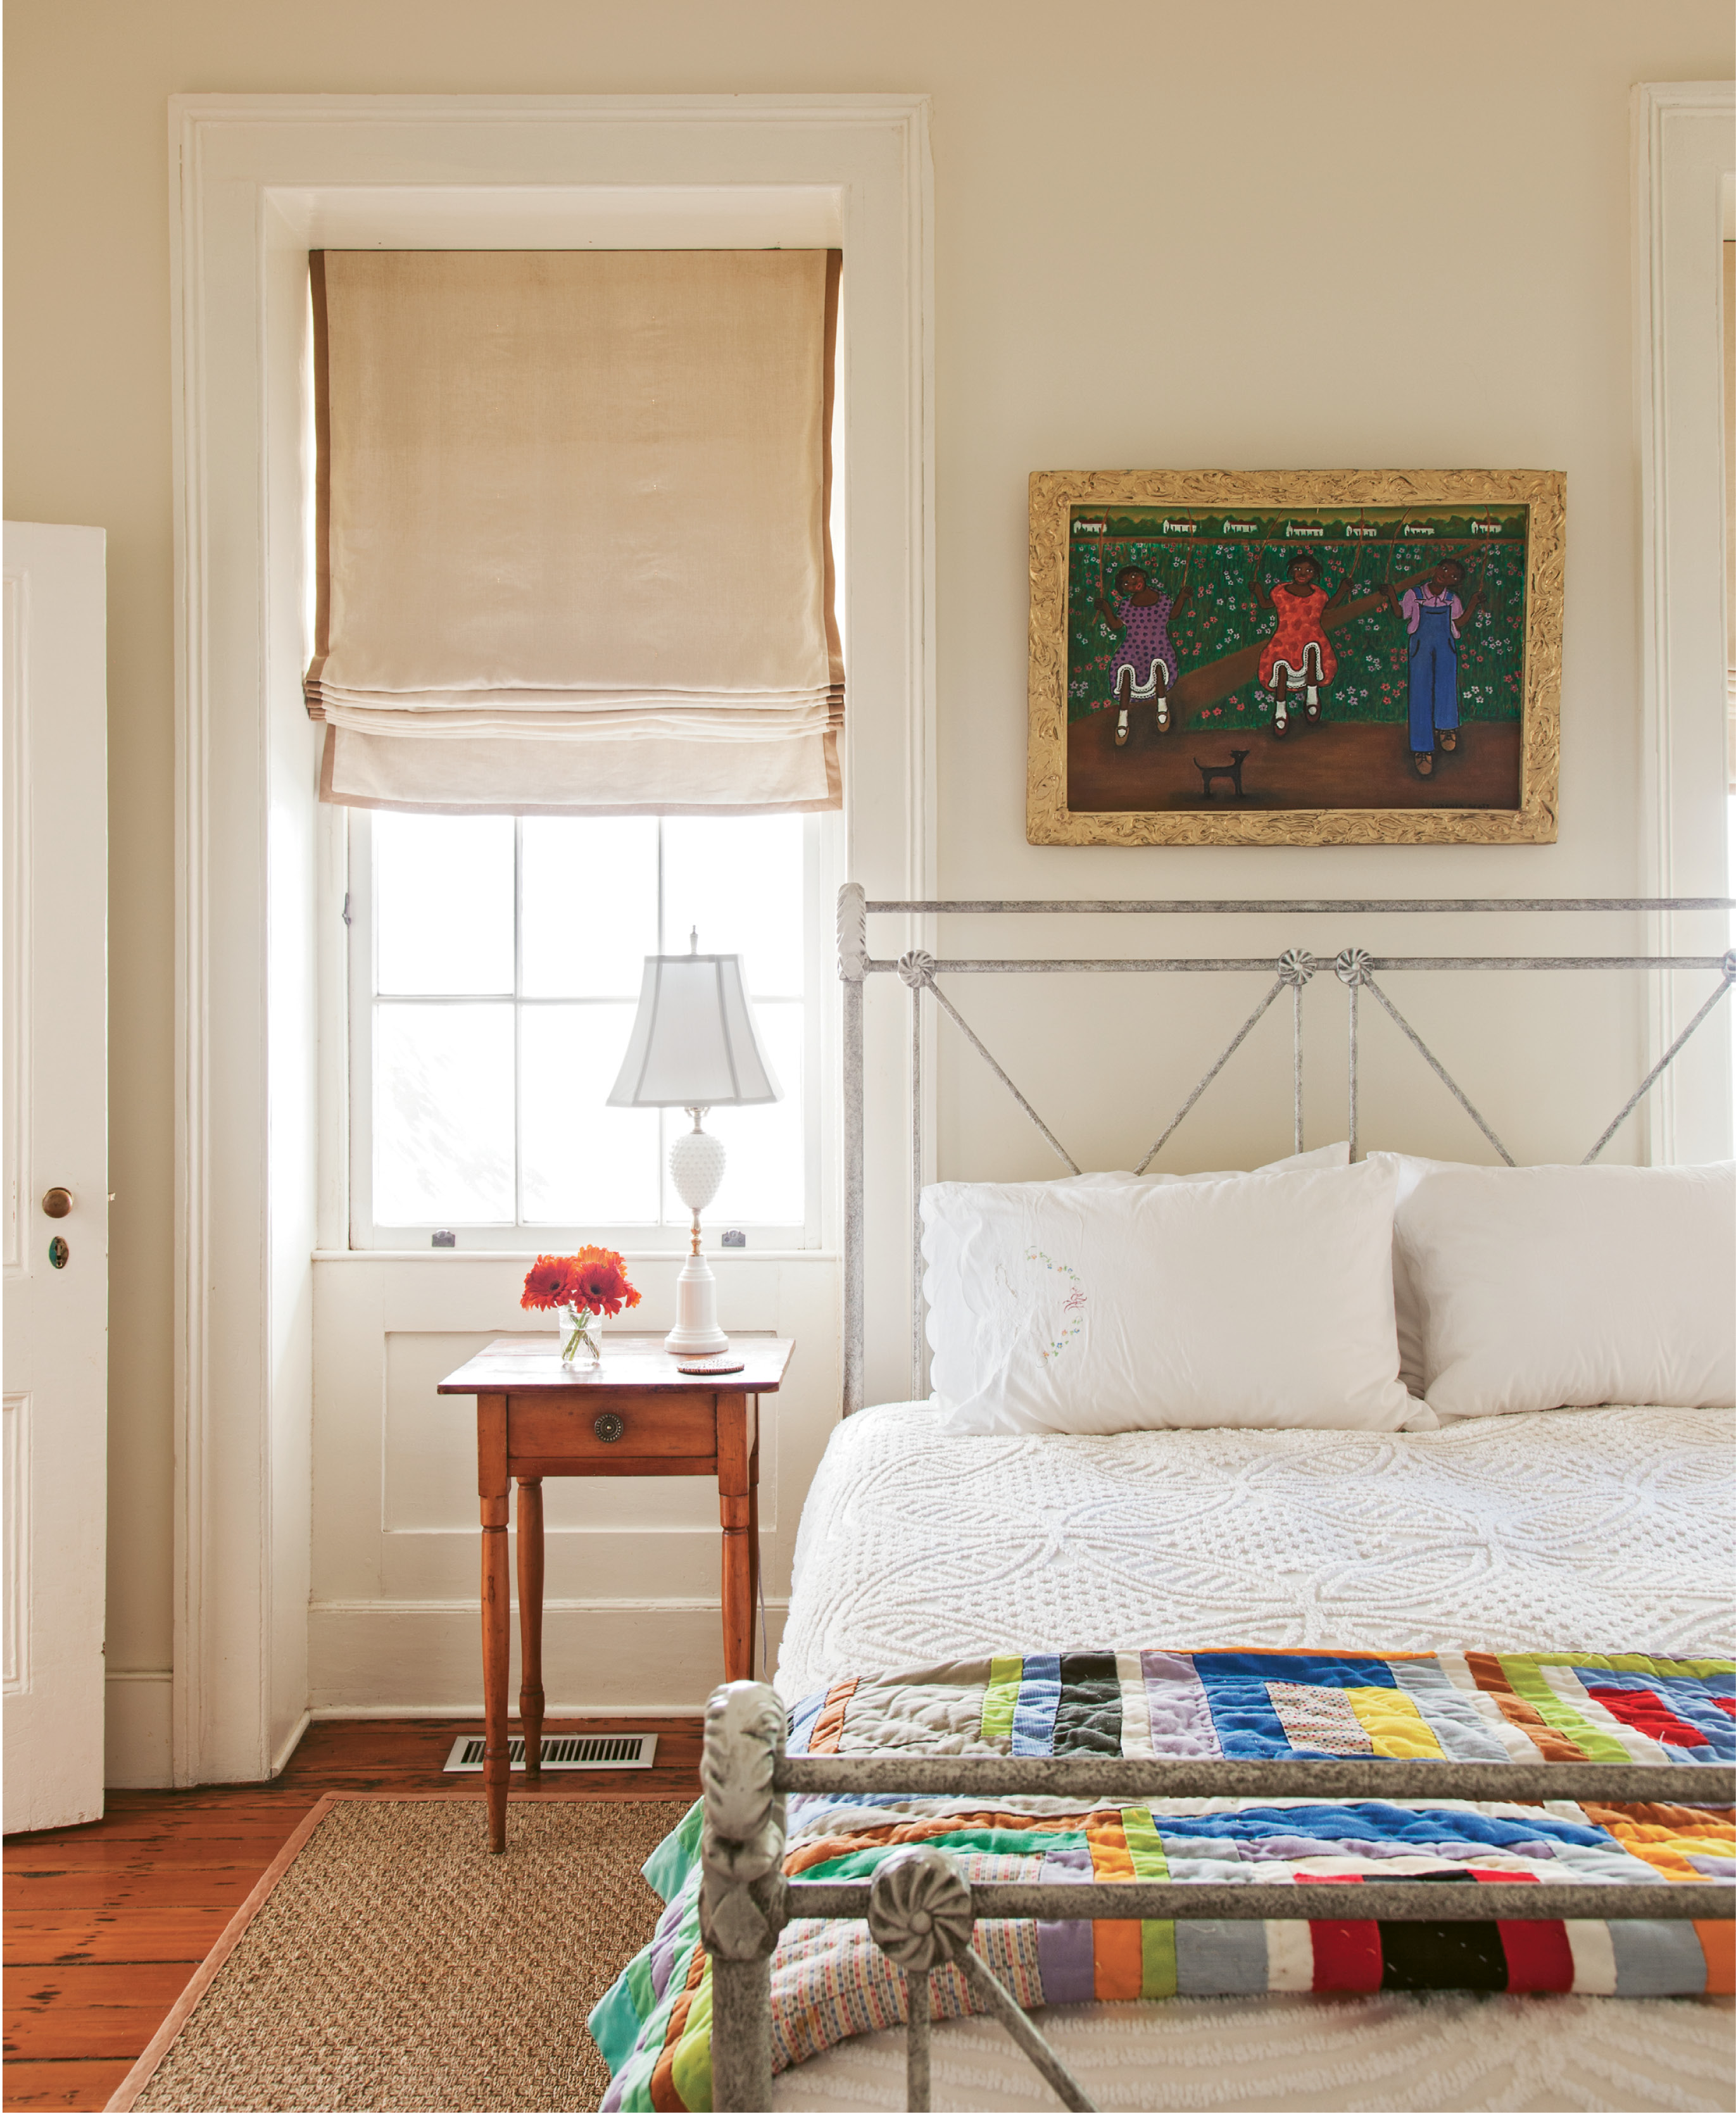 A neutral palette allows the colorful artwork—including a painting by Lorenzo Scott of Atlanta and quilt by Maggie Lou Williams of Bowman, South Carolina—to command visual attention.